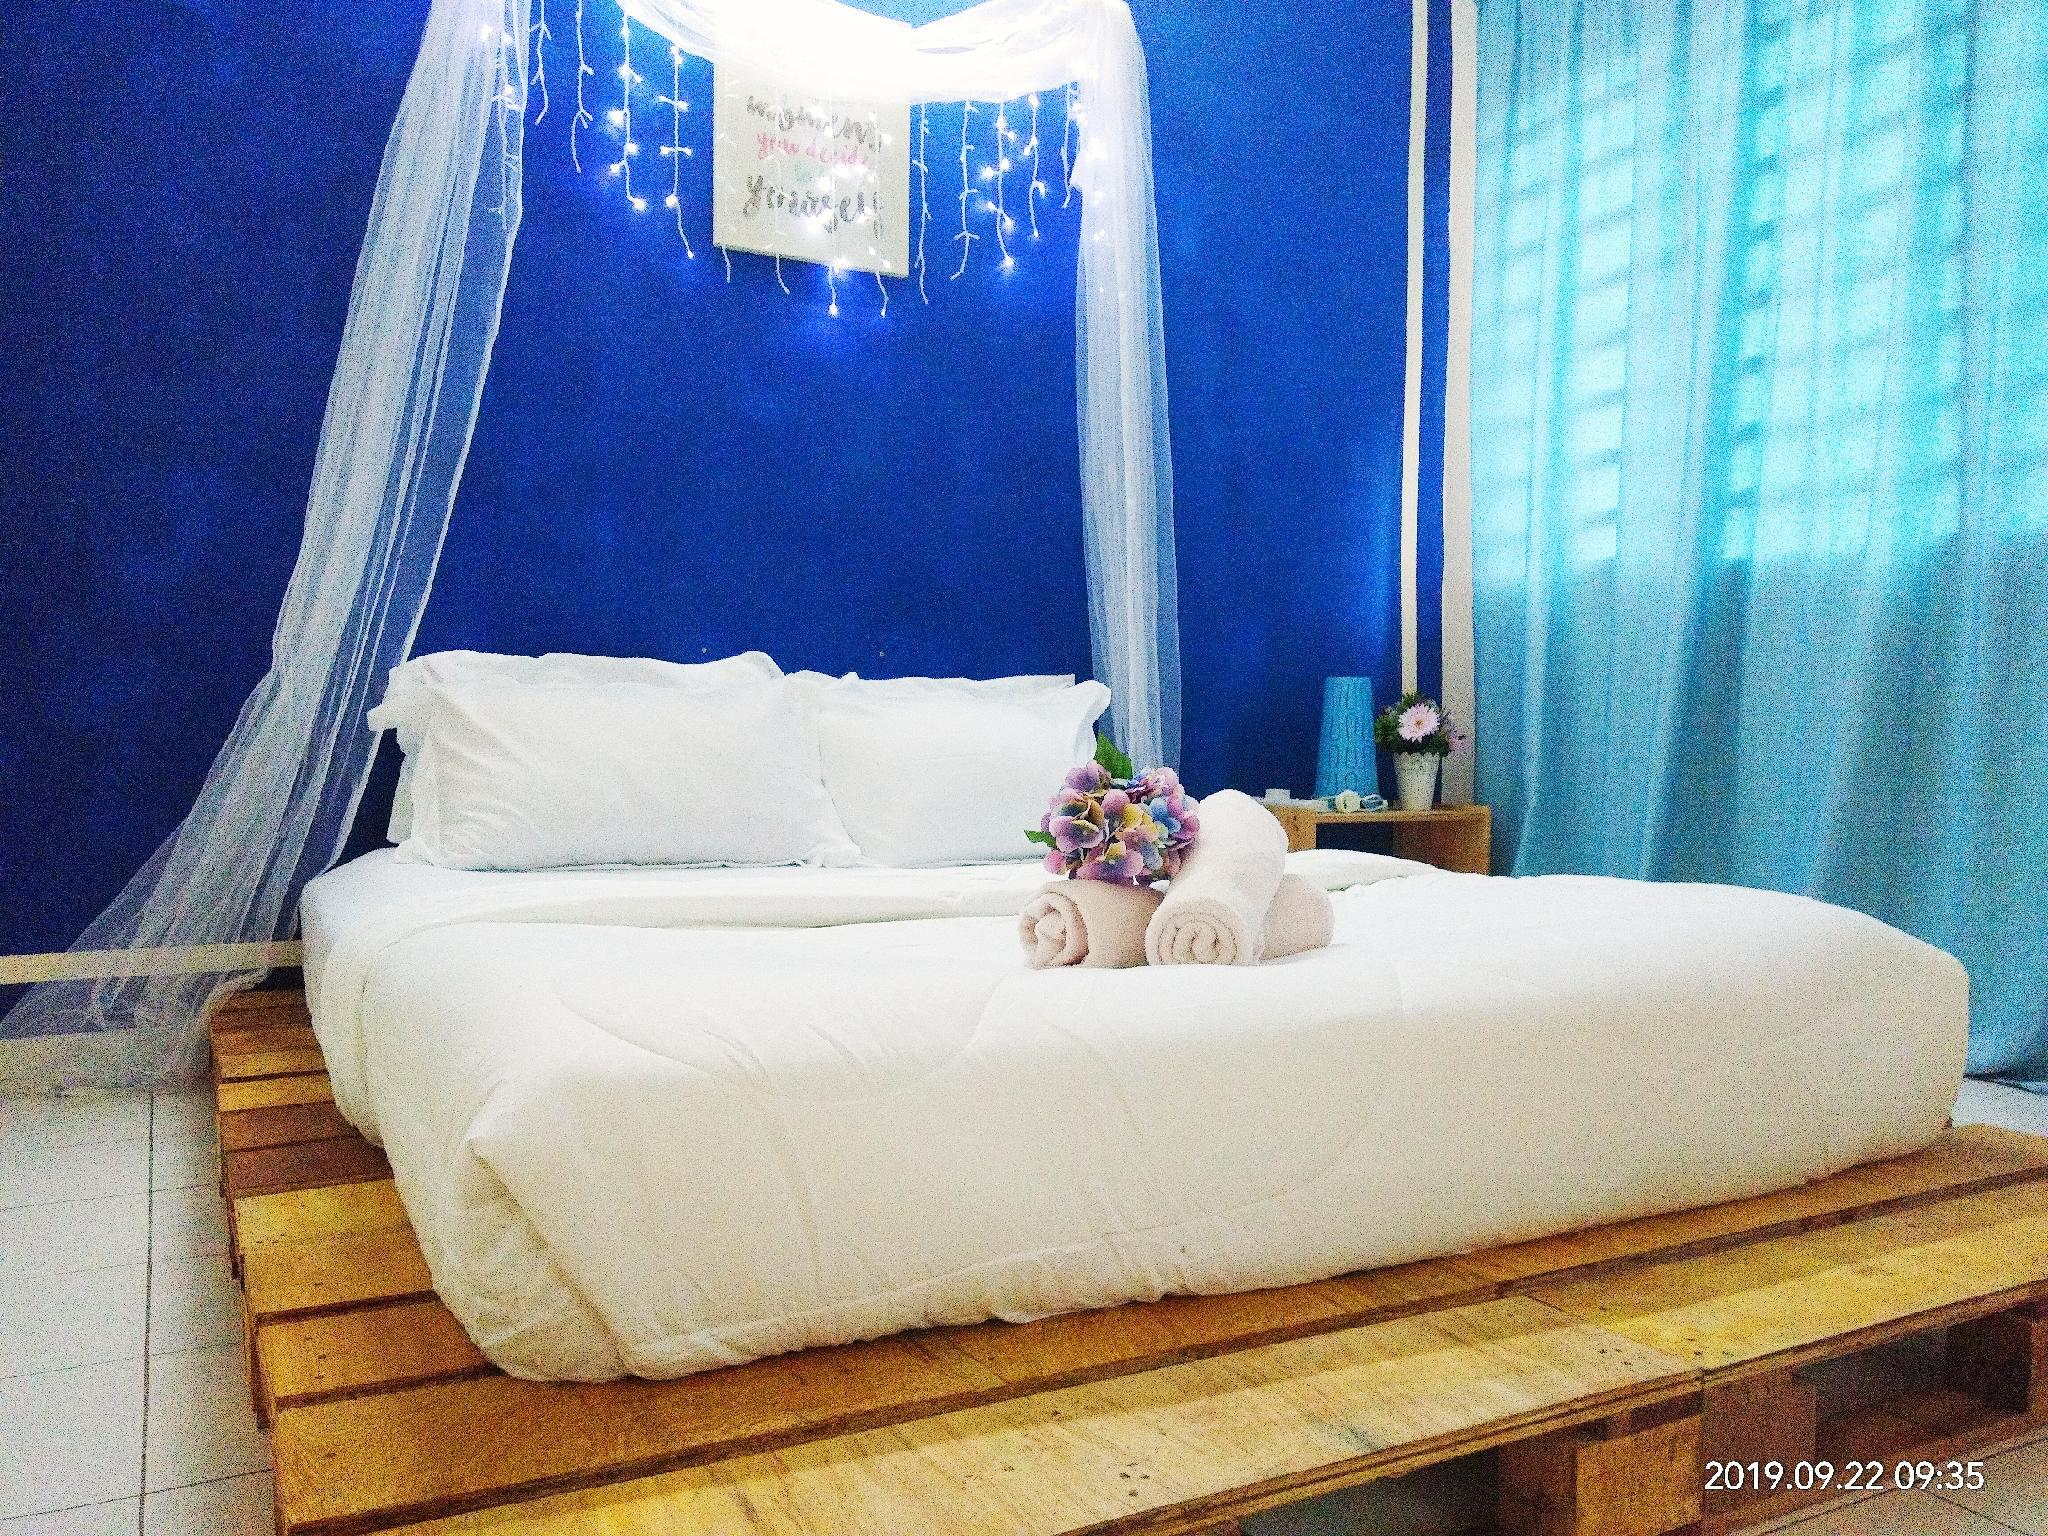 LeCOMFY Guesthouse 2 @ Alpine Village Tambun, Kinta